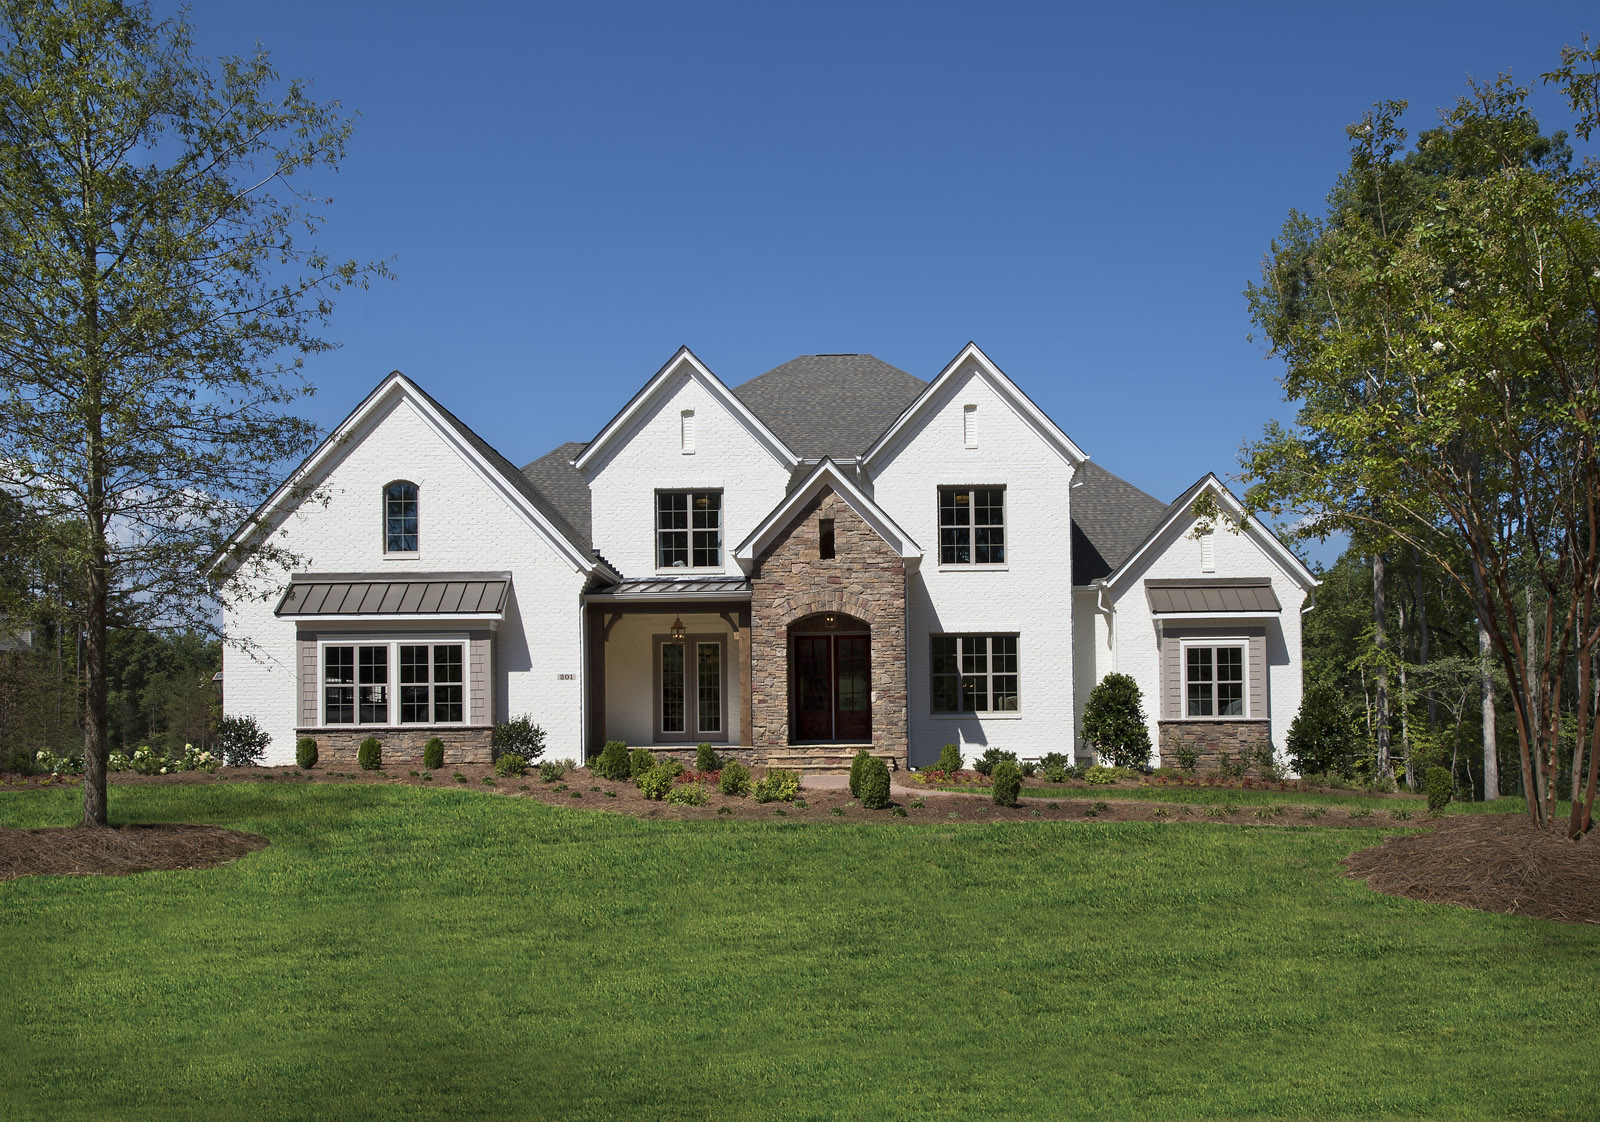 Shea homes opens new luxury model homes in weddington nc for Grayson home